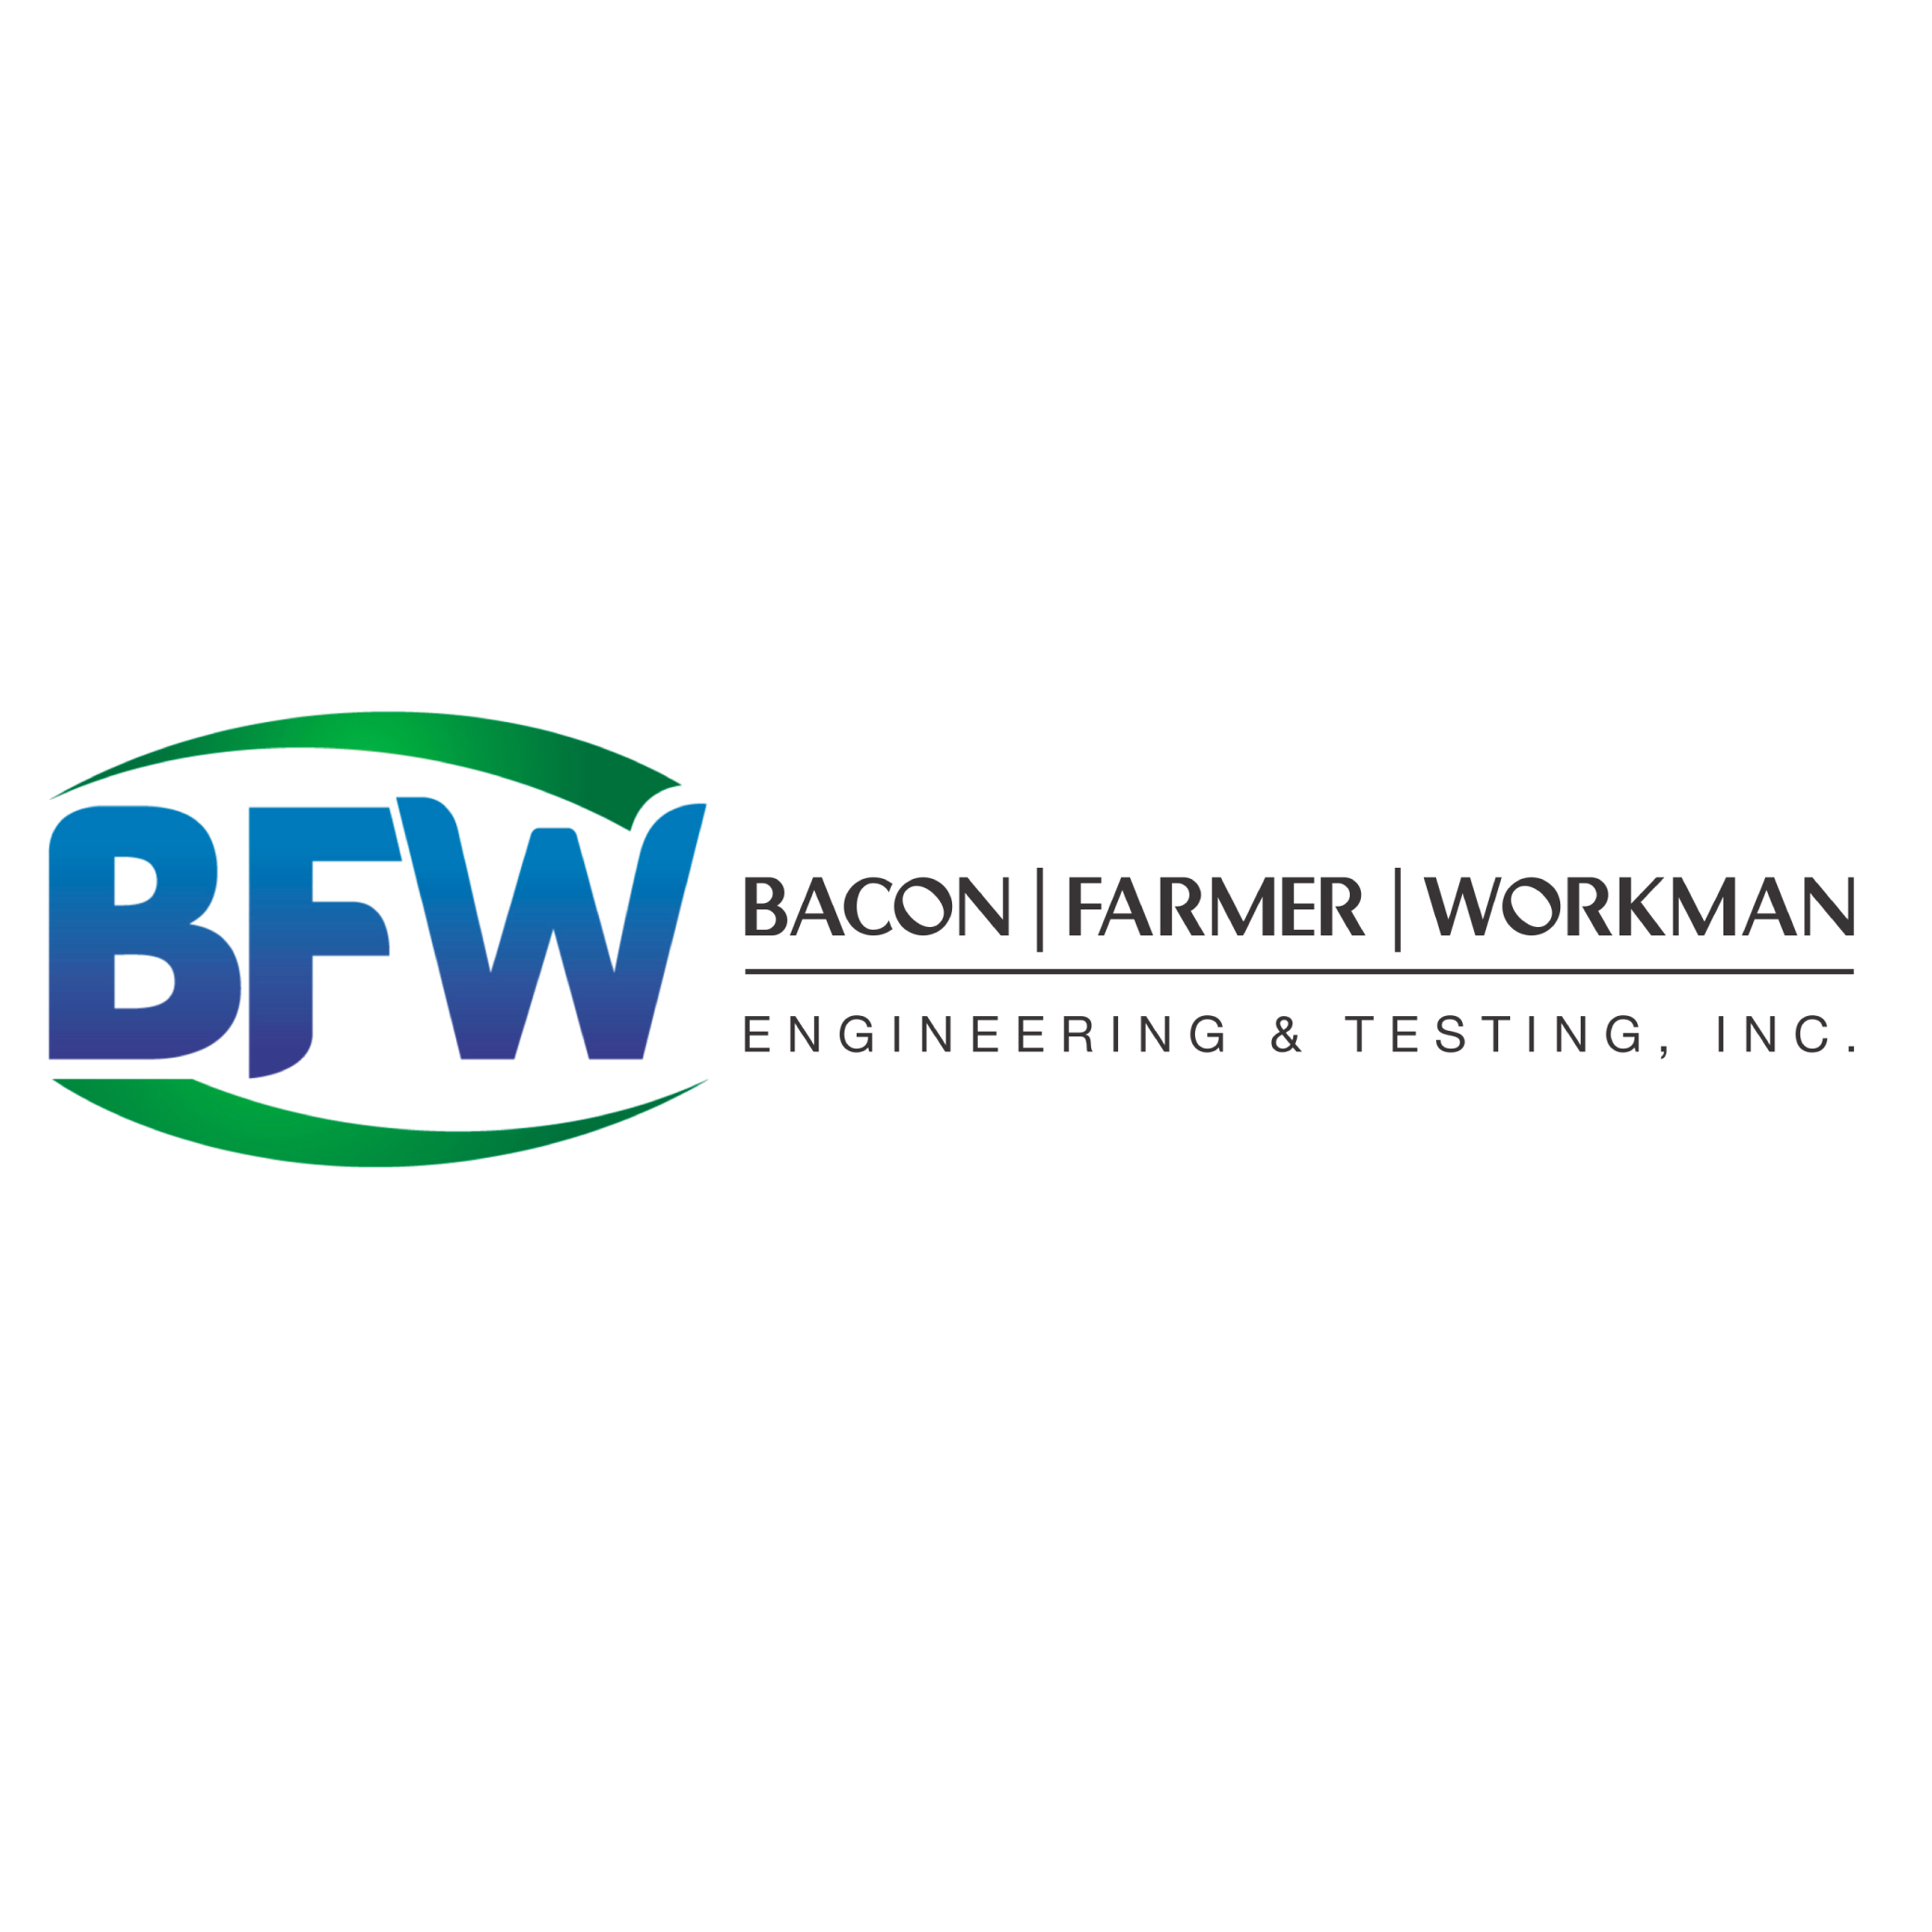 Bacon Farmer Workman Logo